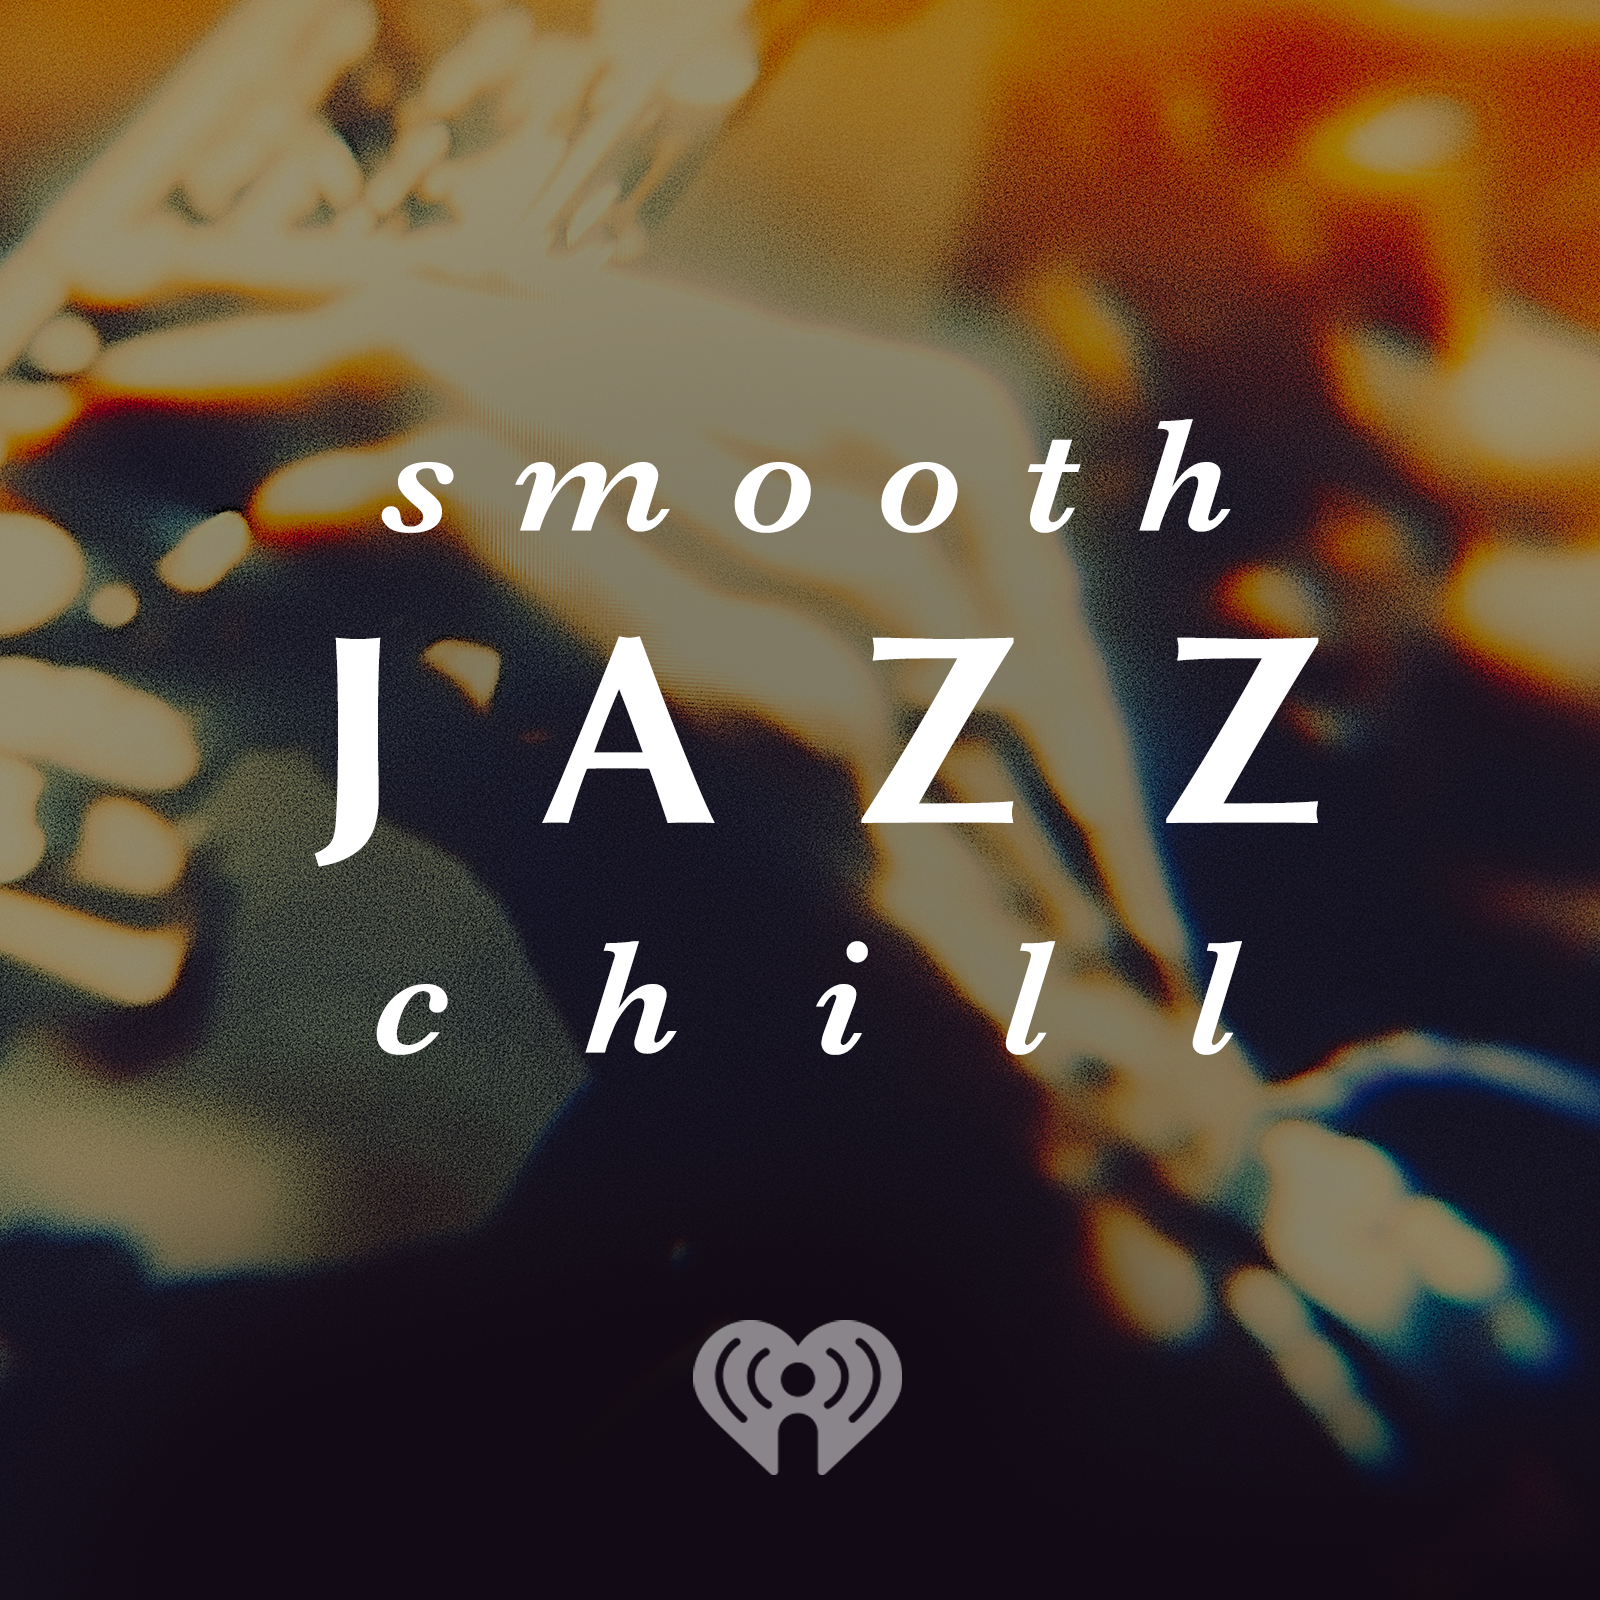 Smooth-Jazz-Chill-Playlist-Cover-V1.png